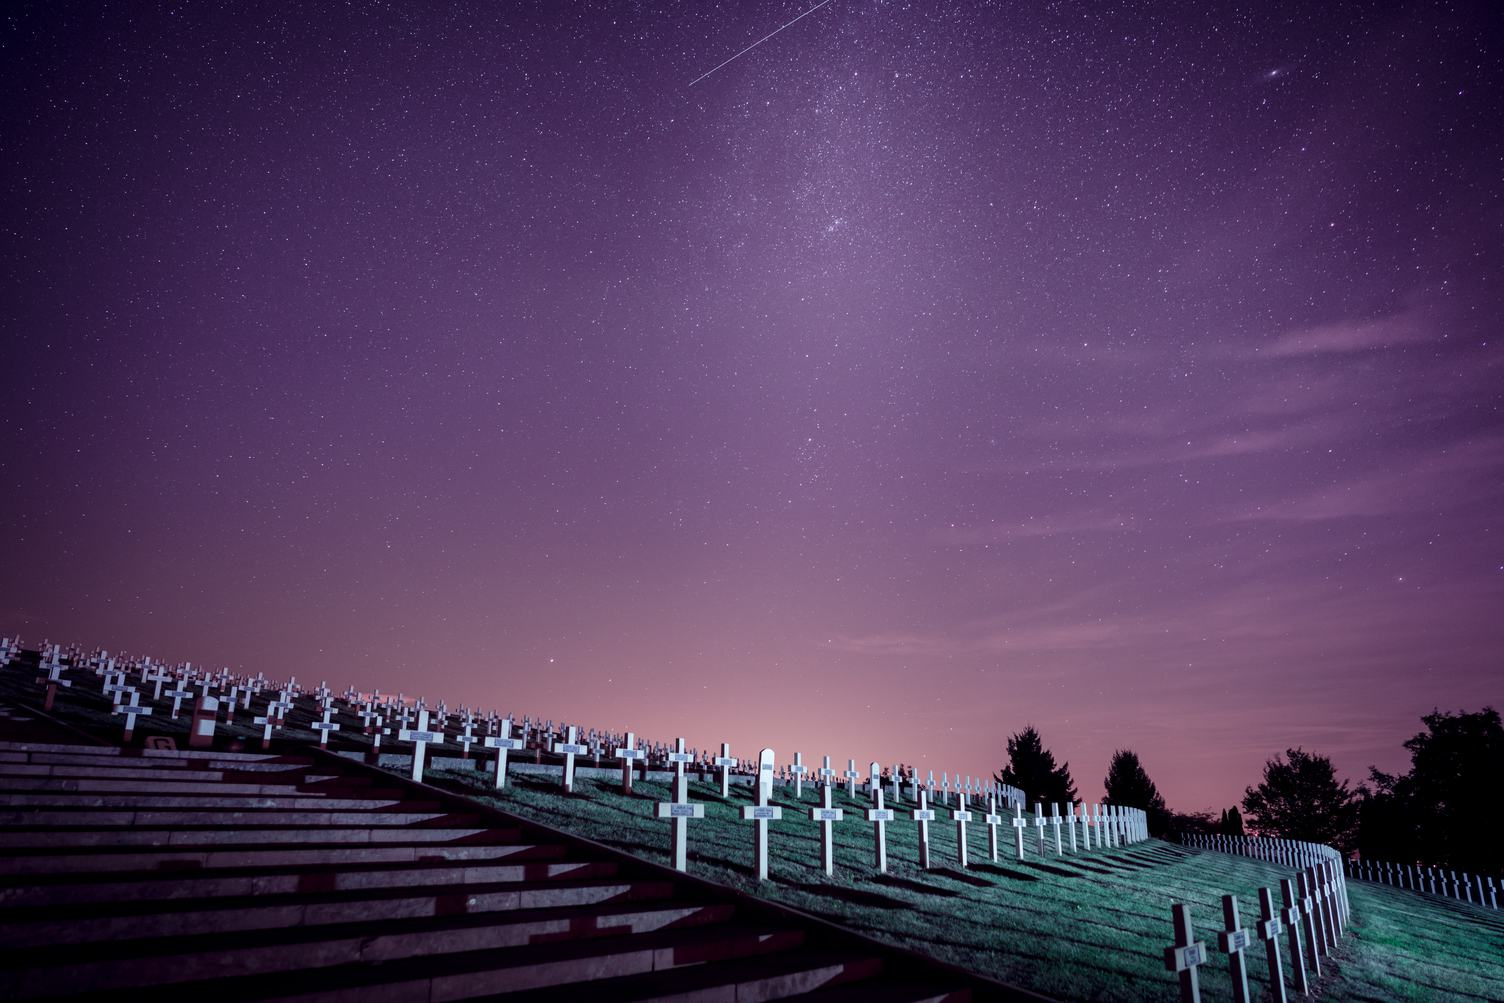 Military Cemetery by Night